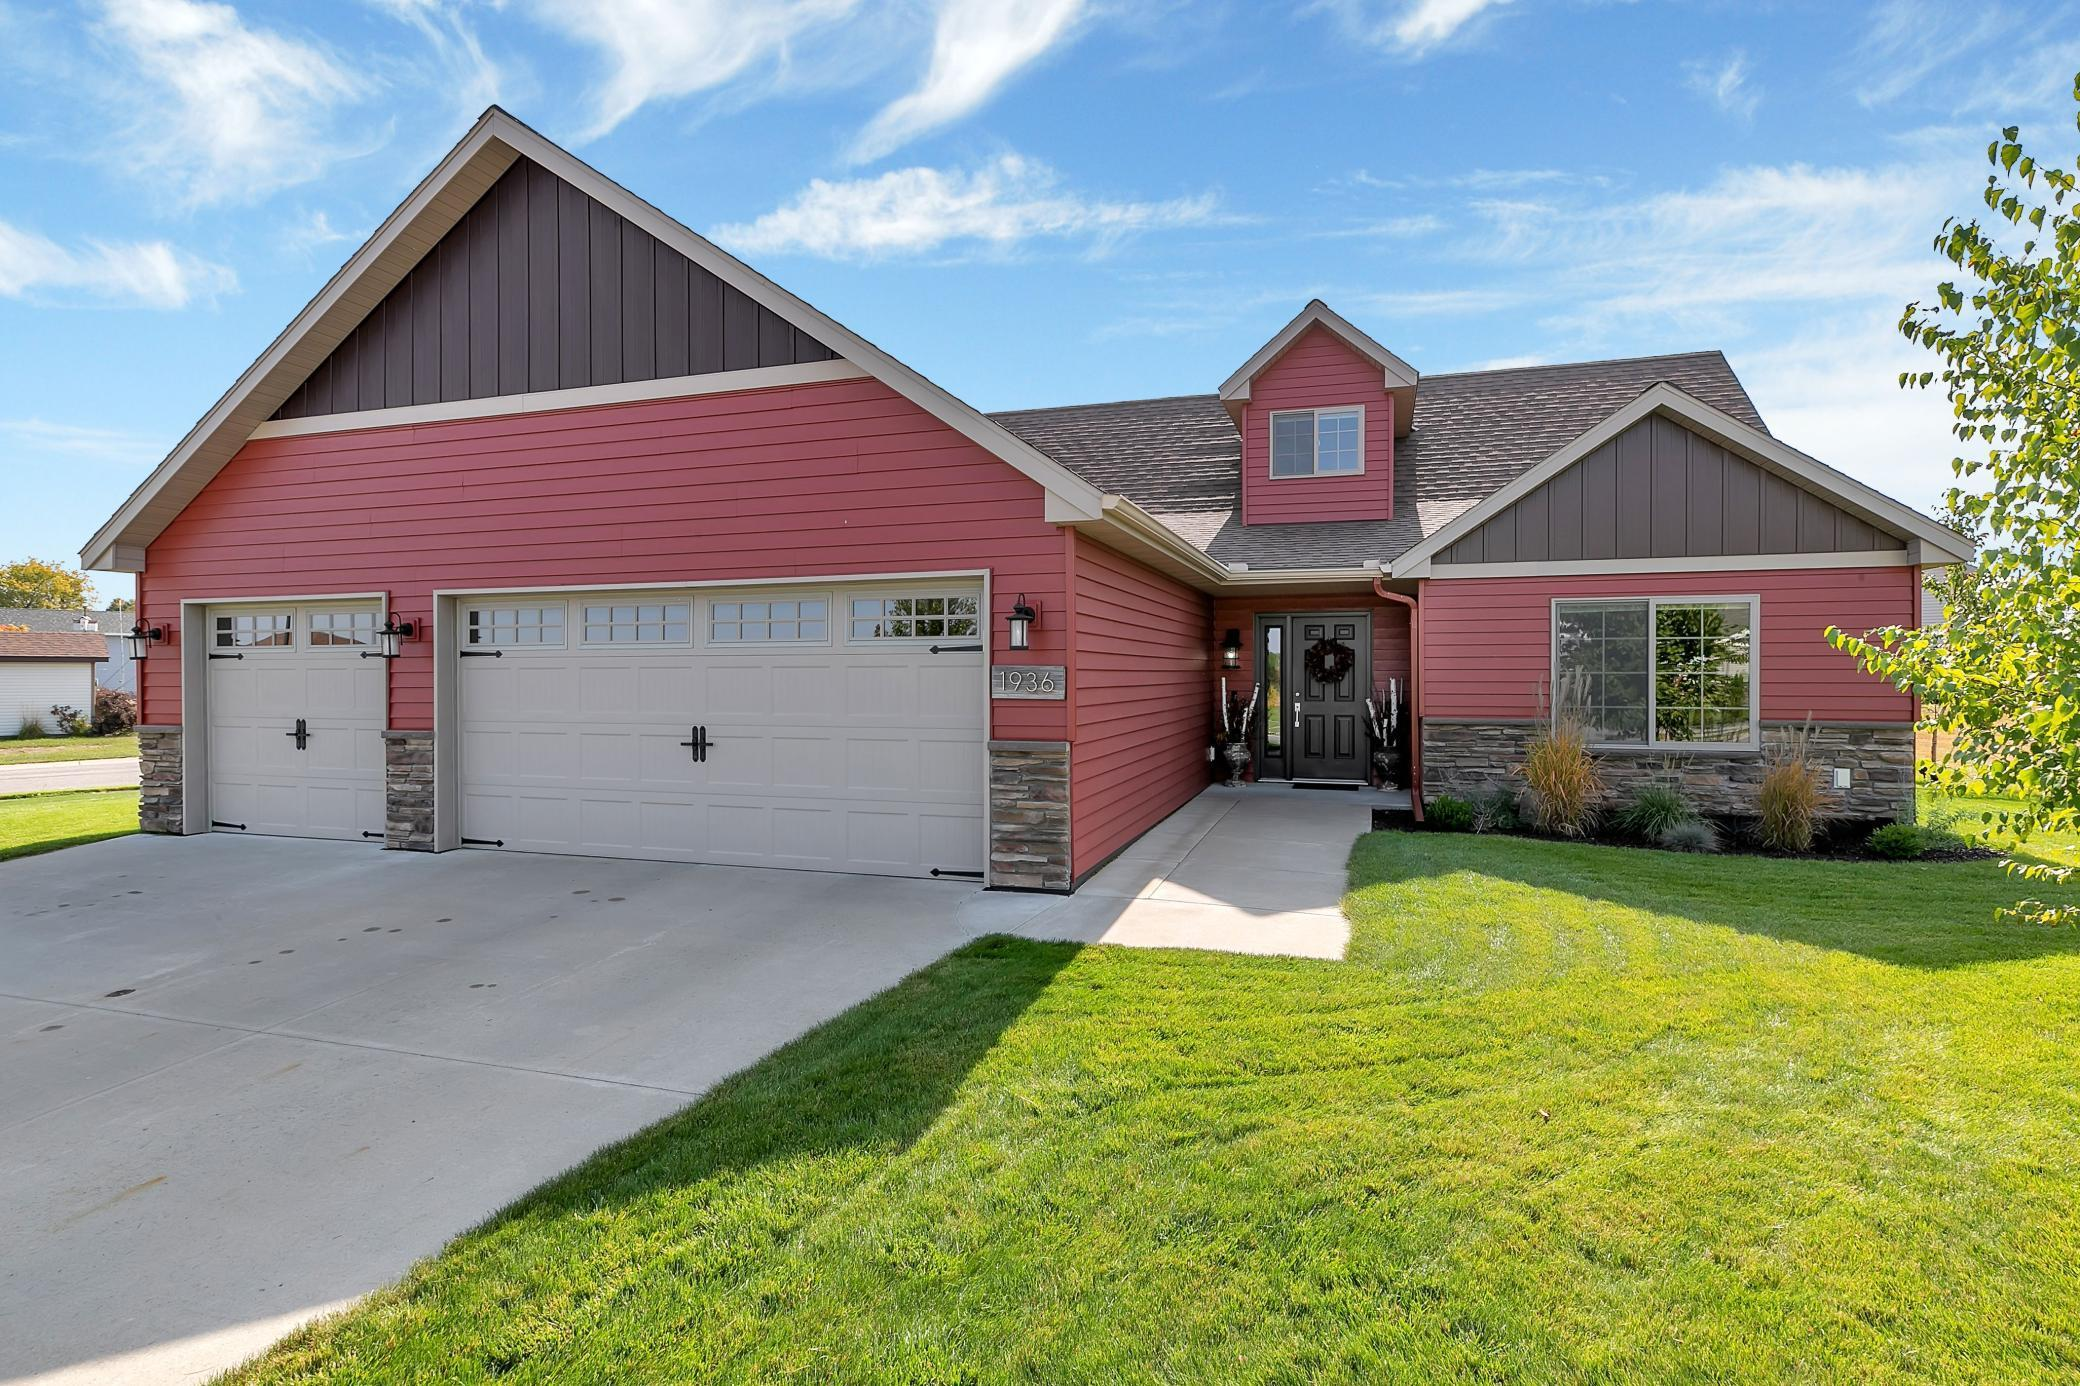 1.5 Story Patio Home Awaits! Kitchen offers Maples cabinets,  pantry w/pull outs, granite counters, beautiful back splash, above cabinets lights, soft close doors & drawers, stainless steel kitchen appliances. Large center Island w/ample storage, knock down ceiling.  Dining room w/patio door leads to patio and fenced backyard. Living room offers beautiful bricked gas fireplace and mantel.  Main floor master bedroom with chandelier, WIC, full bath and ceramic tiled floors. Laundry room w/stackable washer & dryer, cubbies and sink. Half bath powder room. Main floor den, beautiful maple floors. Upstairs loft , 2 great size bedrooms, WIC, 3/4 shower. Maple finishing's & floors, ceramic tile floors. Insulated & heated garage w/pull down ladder for extra storage. Steel siding, 200 Amp, CA, 24x30 garage w/concrete driveway. On corner lot and NO association fees! Patio home plus 2 bedroom, 3/4 bath and loft upstairs!